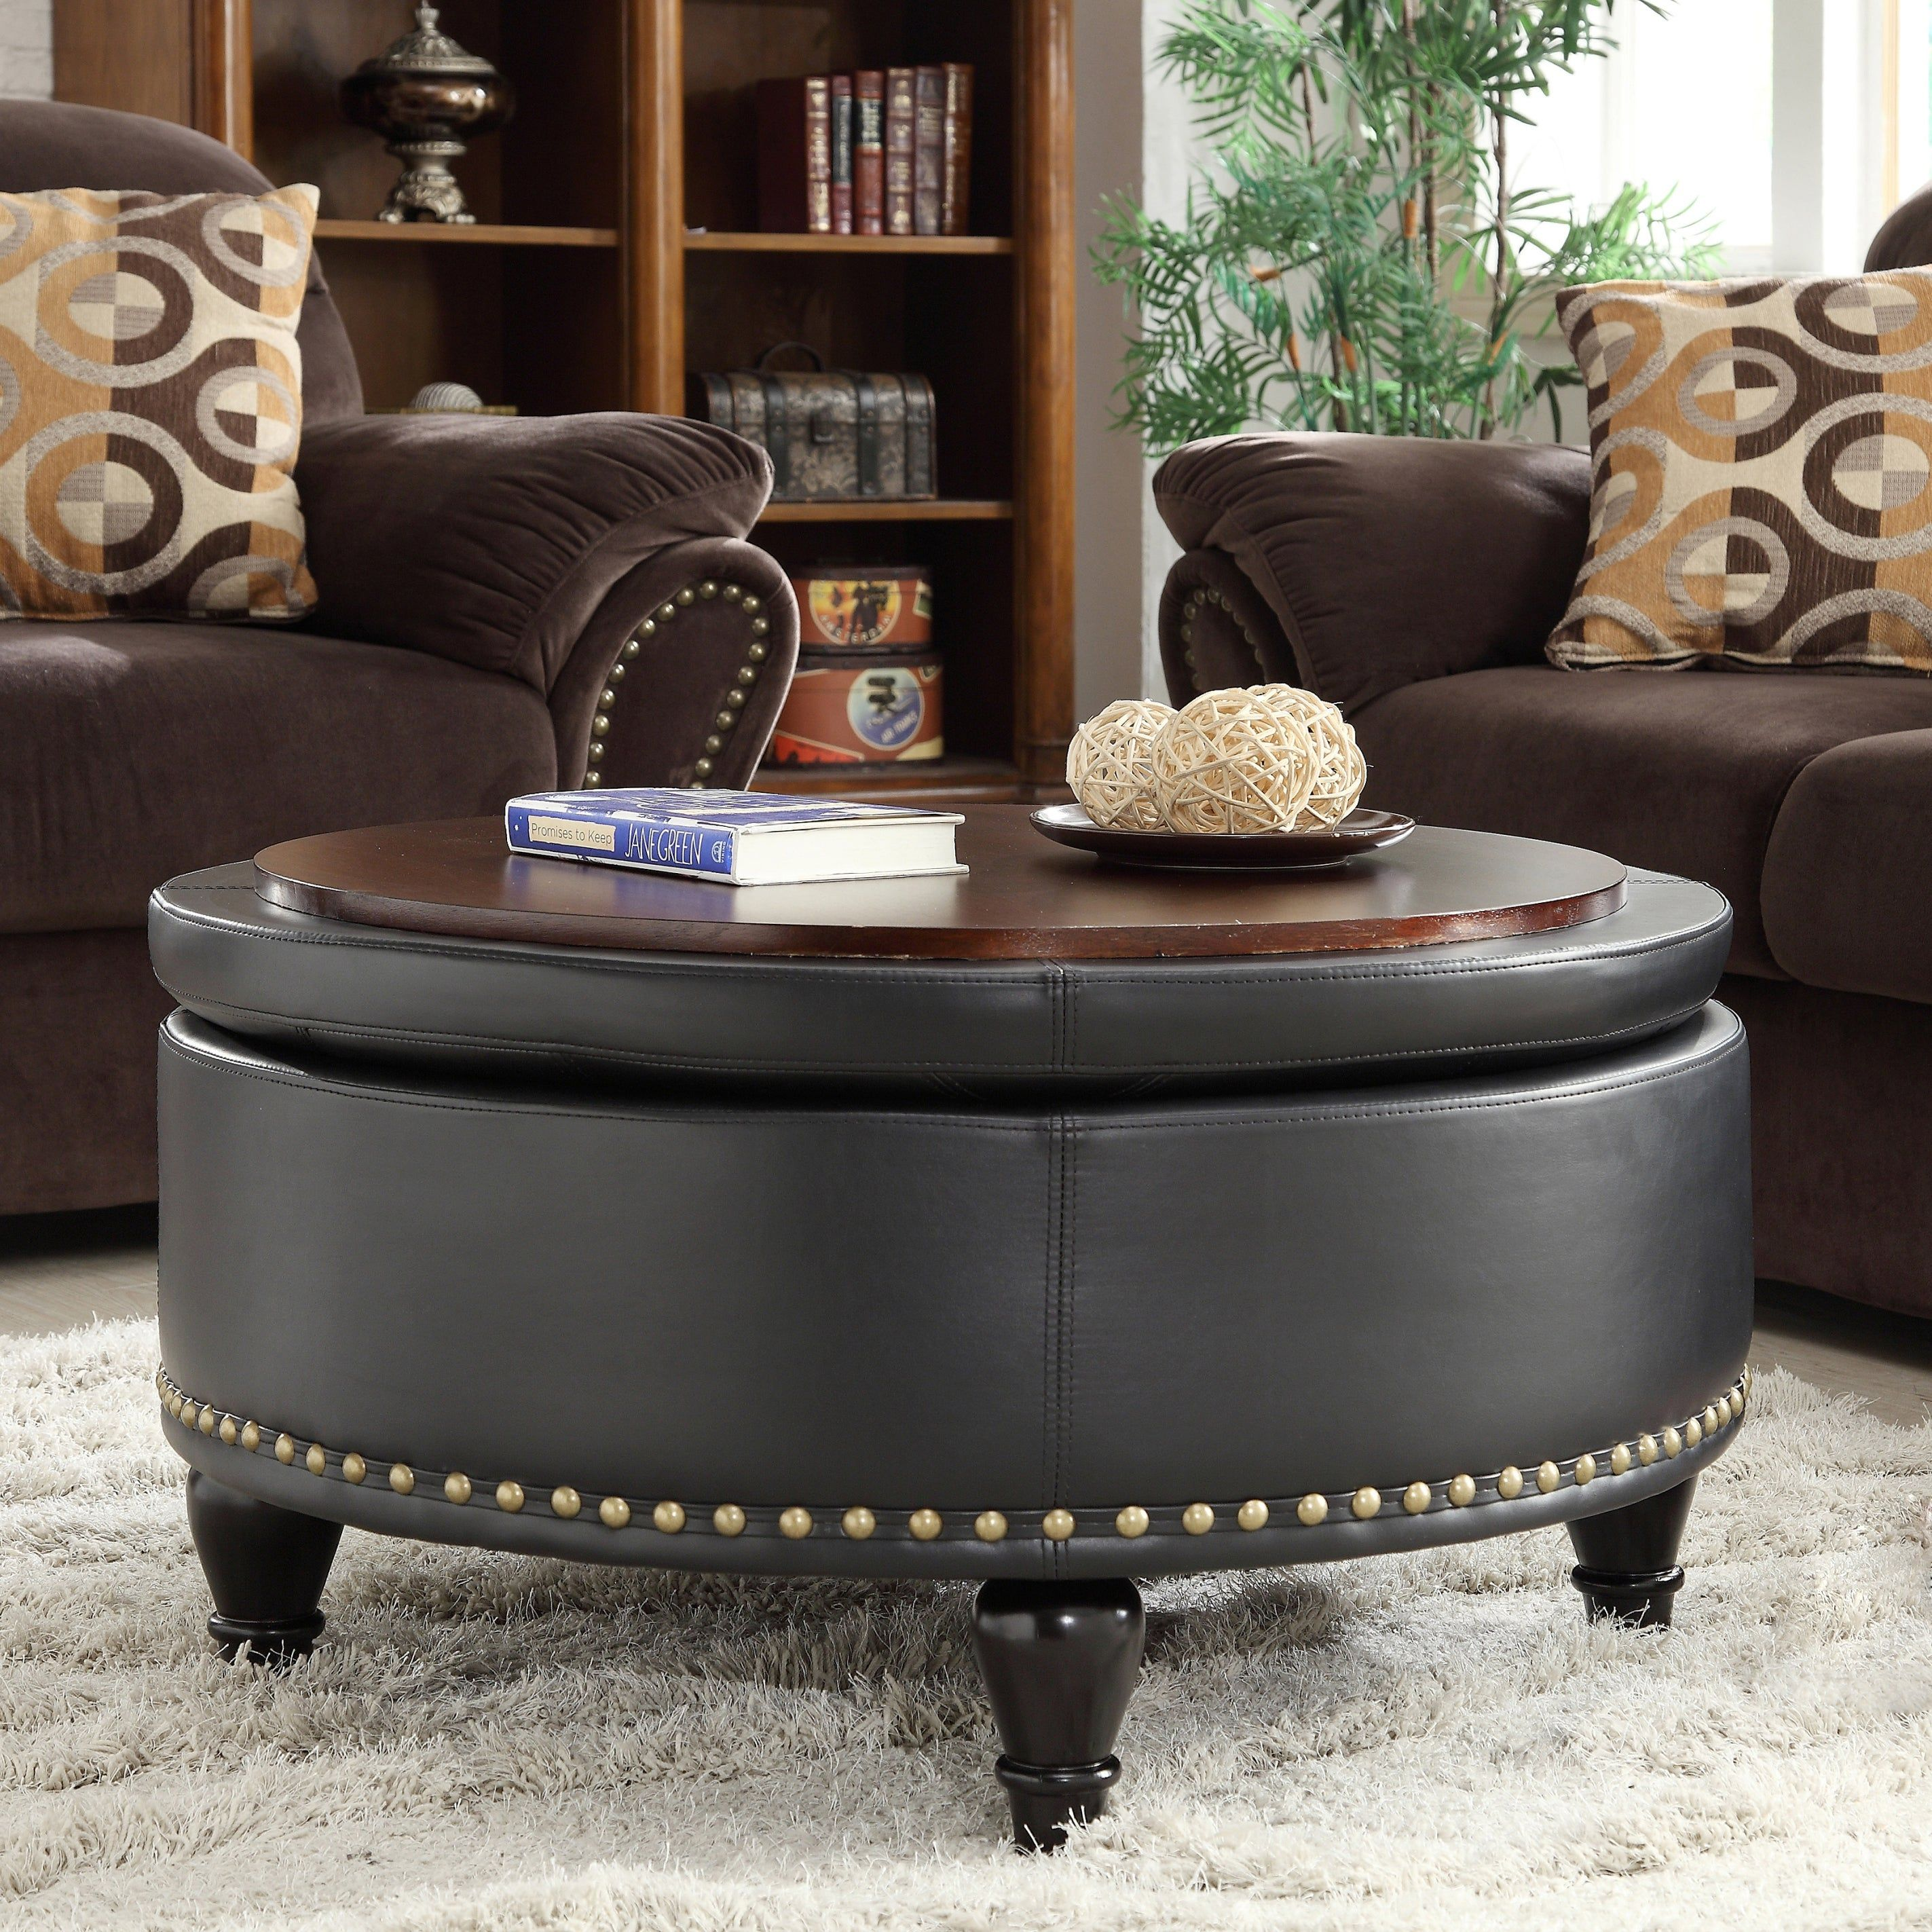 - Gracewood Hollow Belamri Round Storage Ottoman In Espresso (As Is